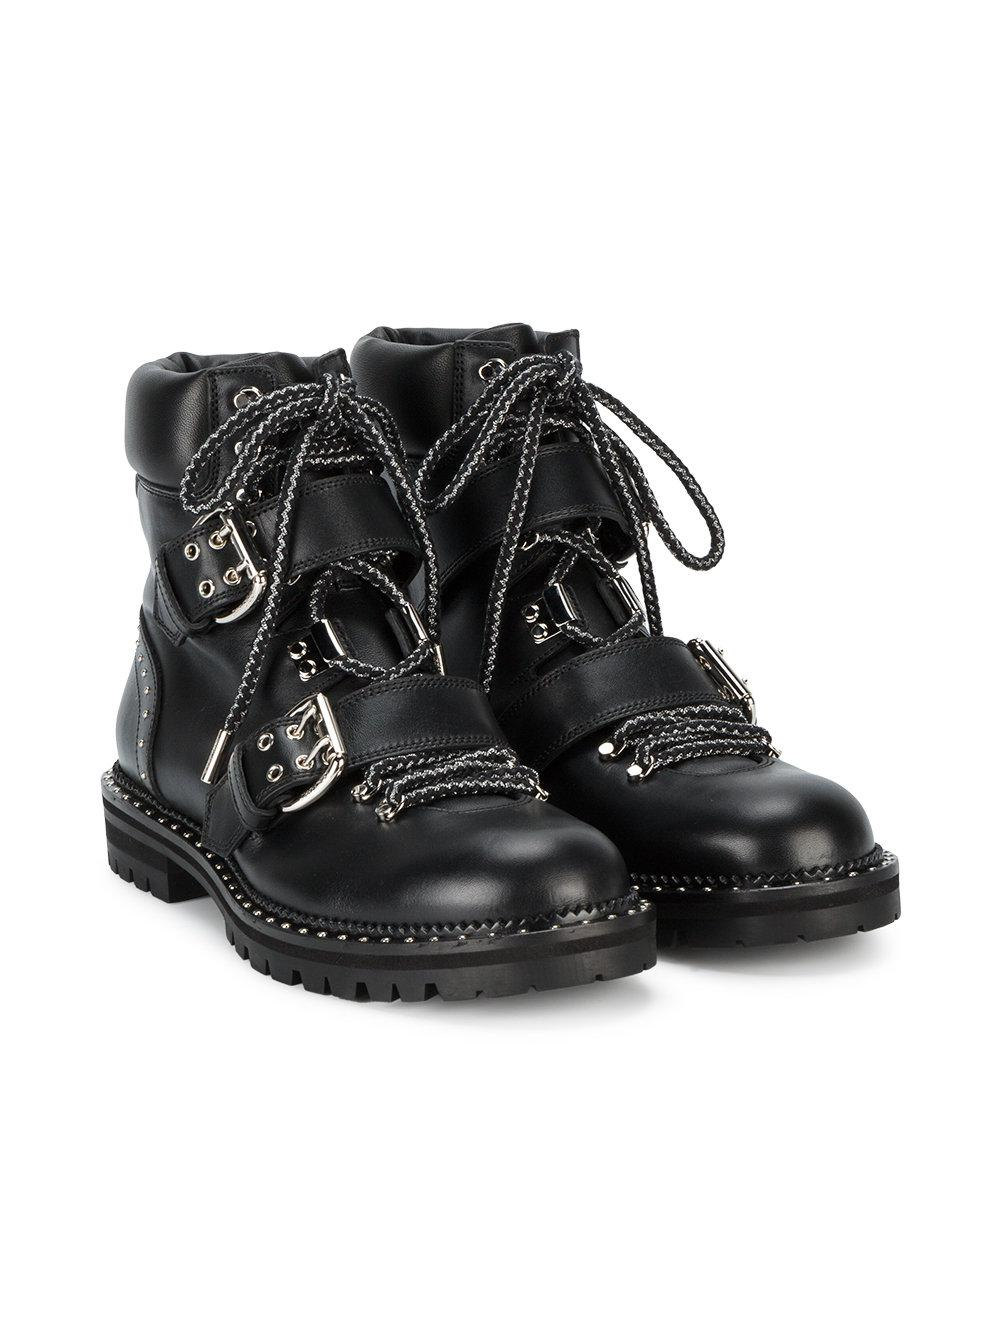 Jimmy chooBreeze Leather Biker Boots dlMzYv